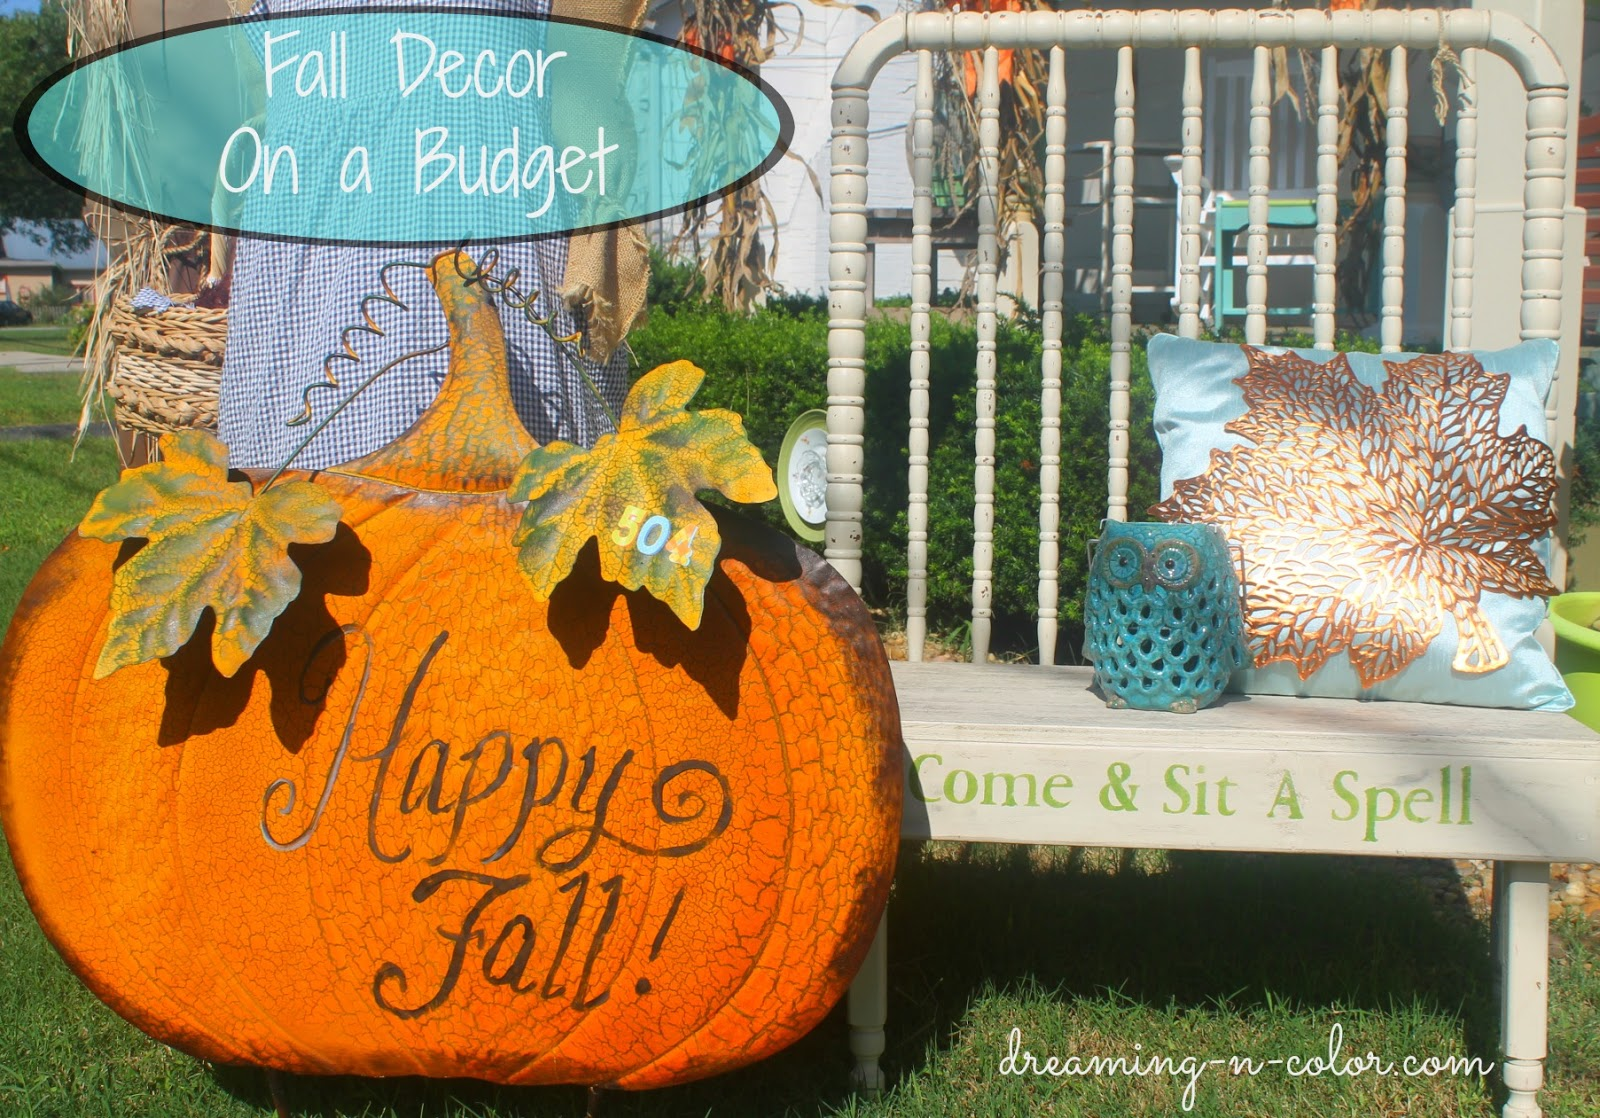 outdoor decoration on a budget | dreamingincolor: Outdoor Fall Decor on a Budget